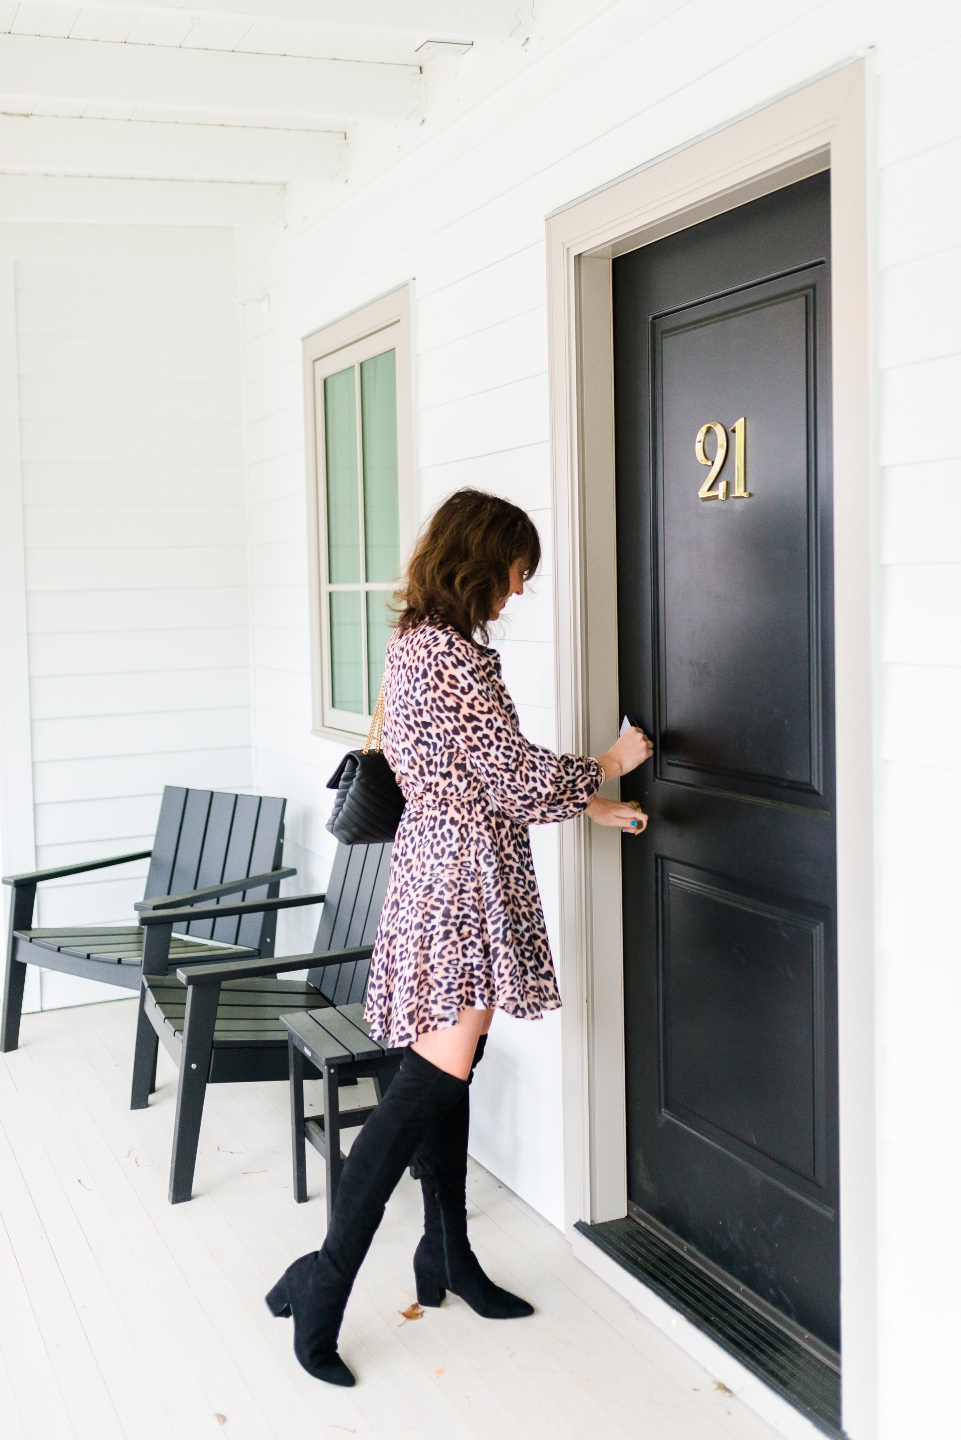 Places to Stay: The Colonial Inn in Hillsborough NC - I'm Fixin' To - @imfixintoblog |The Colonial Inn Hillsborough NC by popular NC travel blog, I'm Fixin' To: image of a woman standing in front of a black door with a gold number 21 mounted to it.